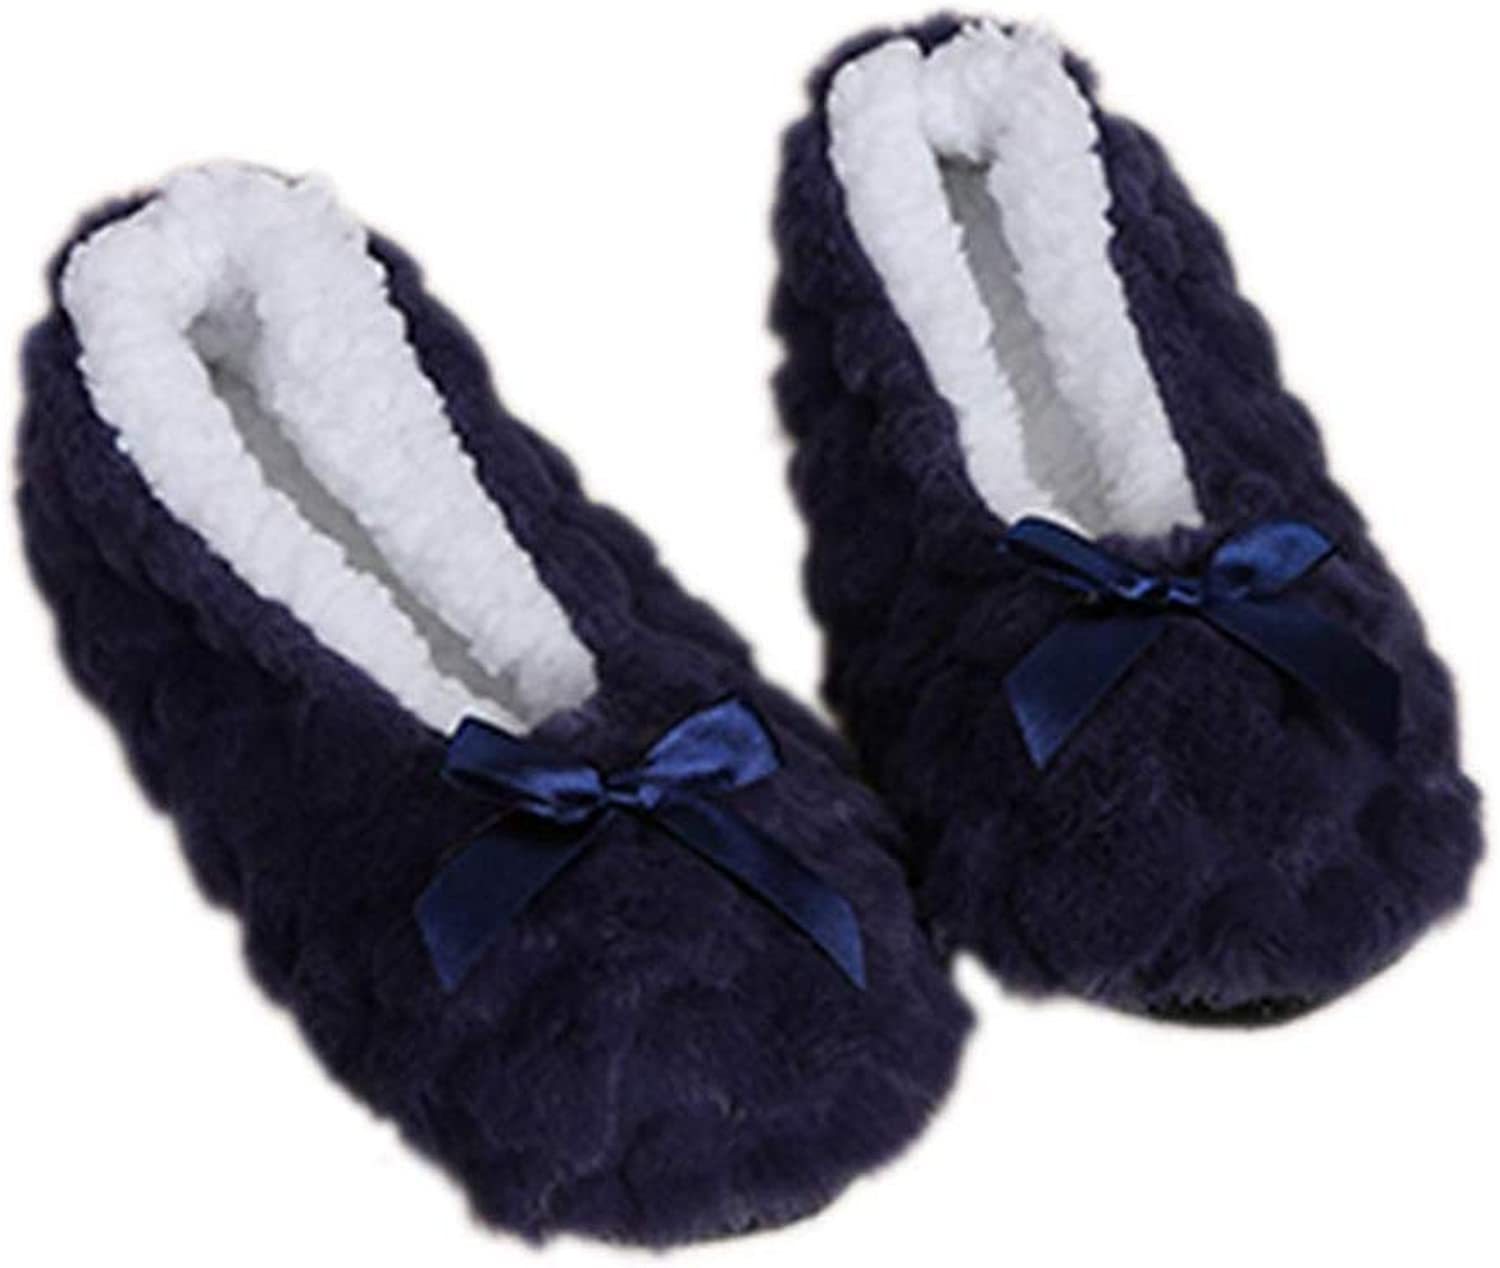 York Zhu Women Winter Warm Home Slippers Soft Sole Plush Cotton-Padded House Slippers